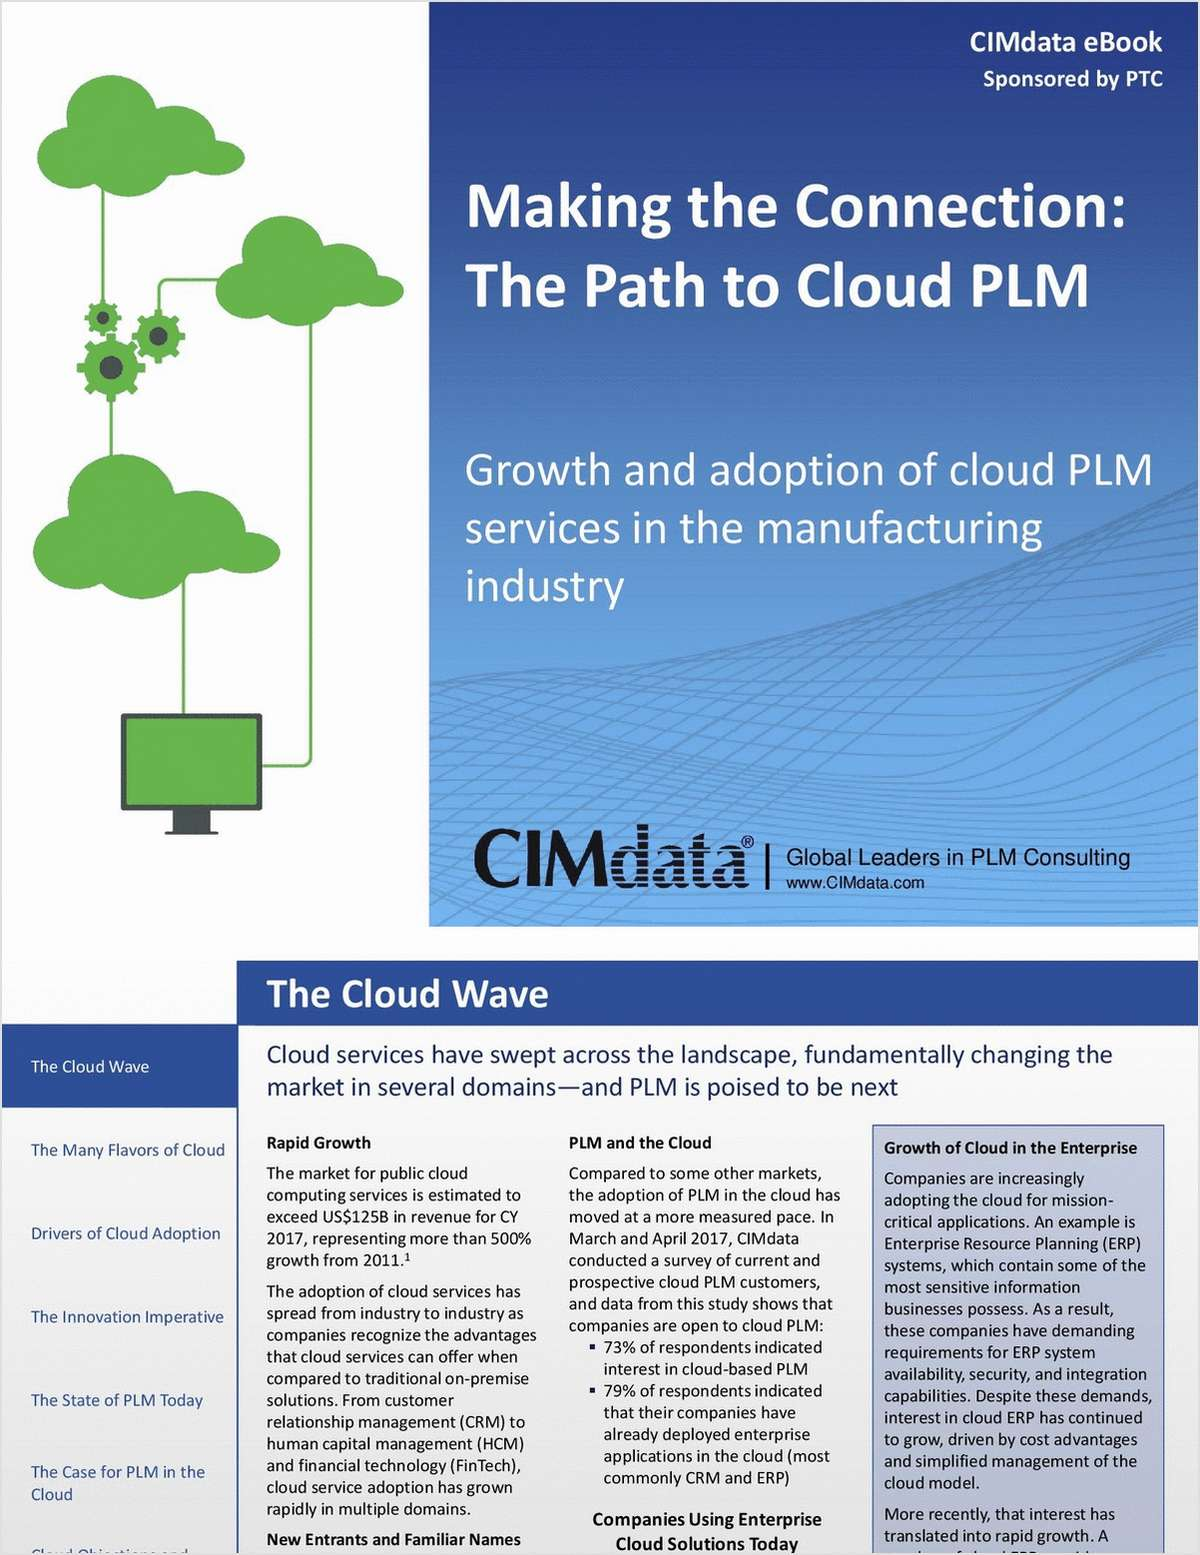 Making the Connection: The Path to Cloud PLM